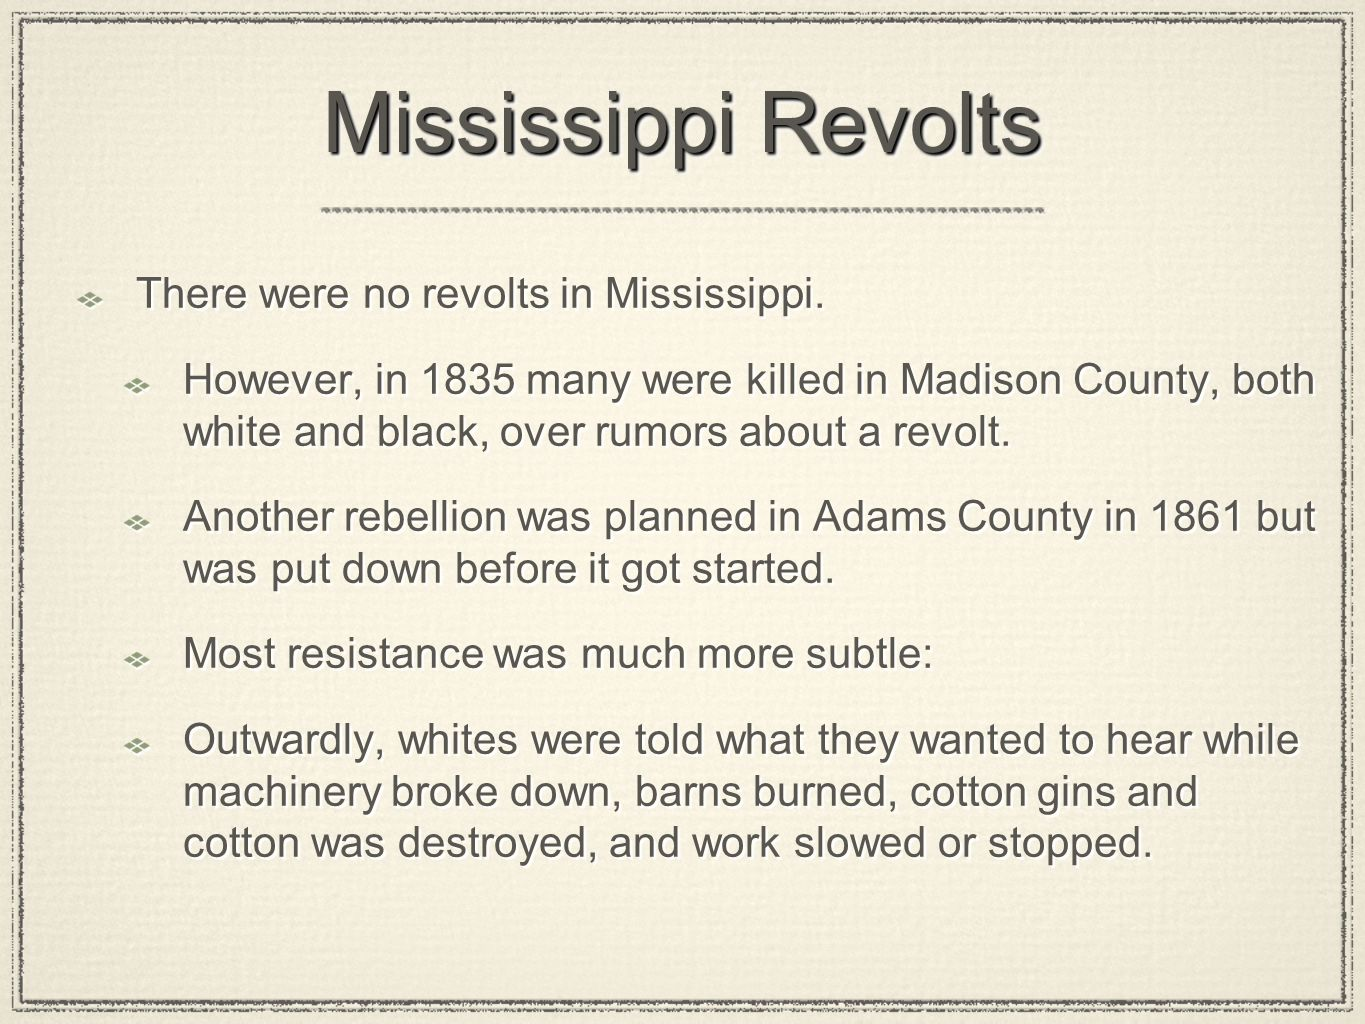 Mississippi Revolts There were no revolts in Mississippi.